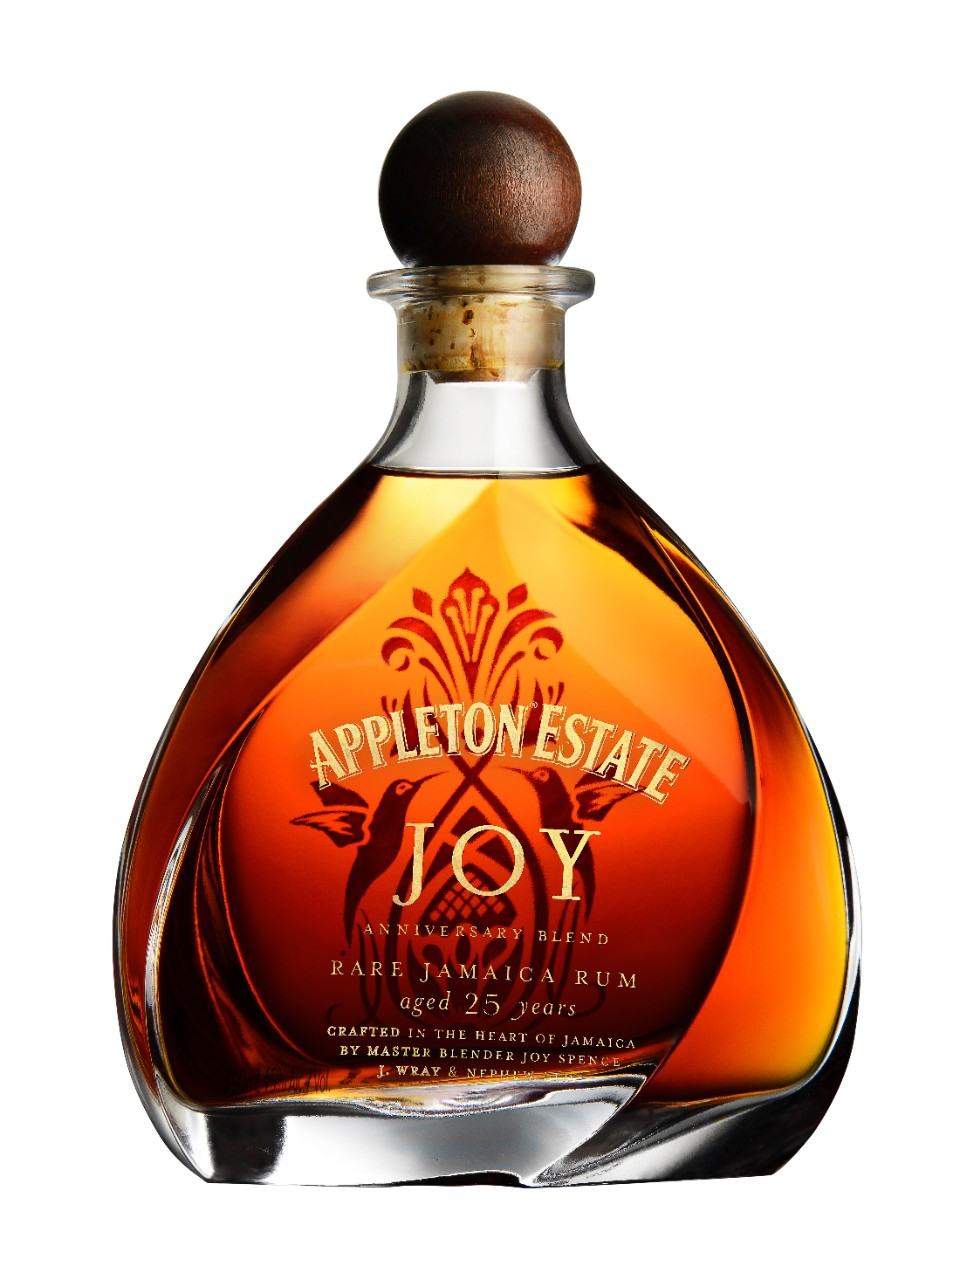 Image for Appleton Estate Joy 25 Year Old Rare Jamaica Rum from LCBO